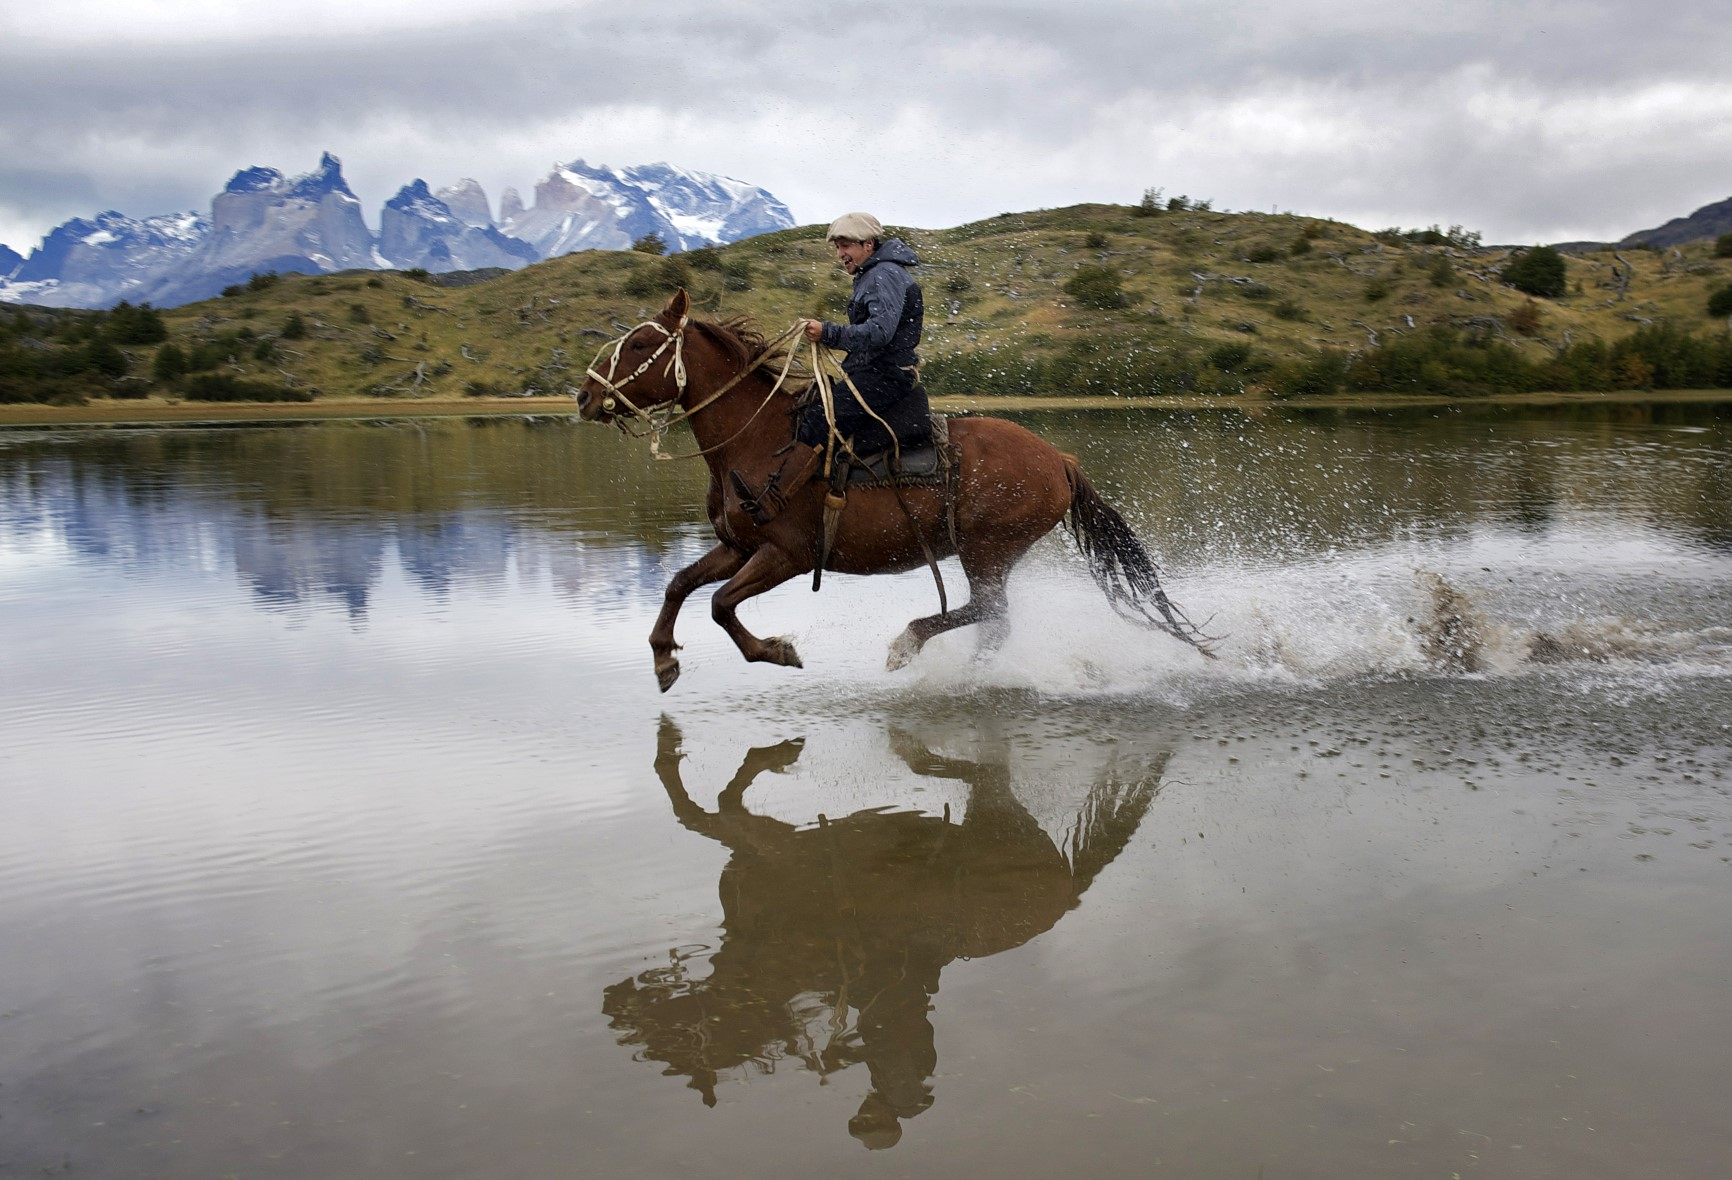 Explora Patagonia Horse-riding excursion Patagonia Chile South America South American Travel Specialists South American Adventure